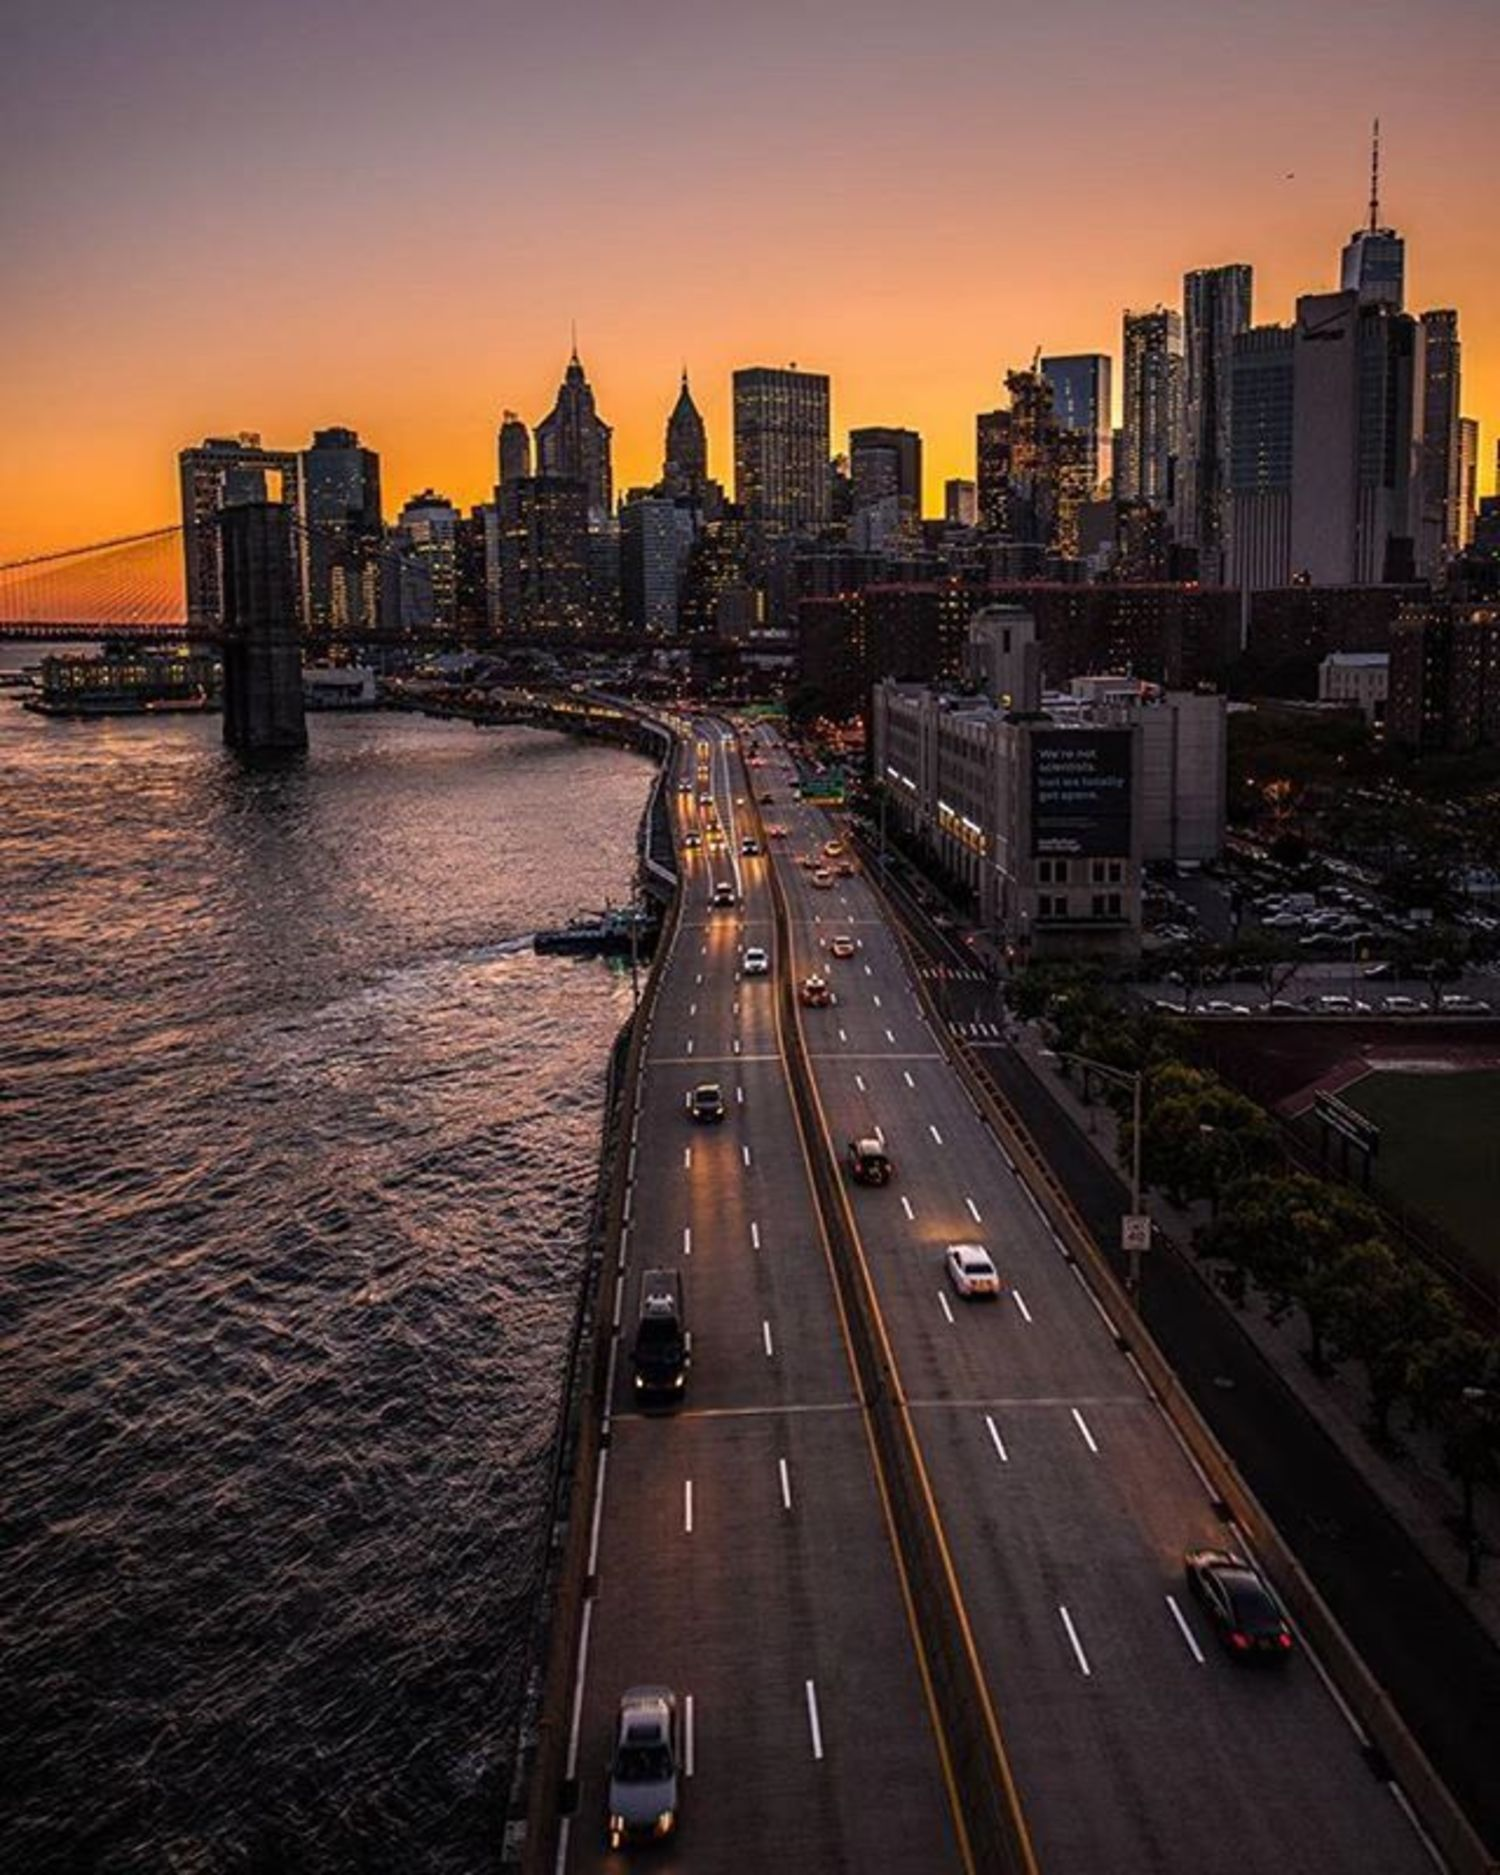 New York, New York. Photo via @m_bautista330 #viewingnyc #newyorkcity #newyork